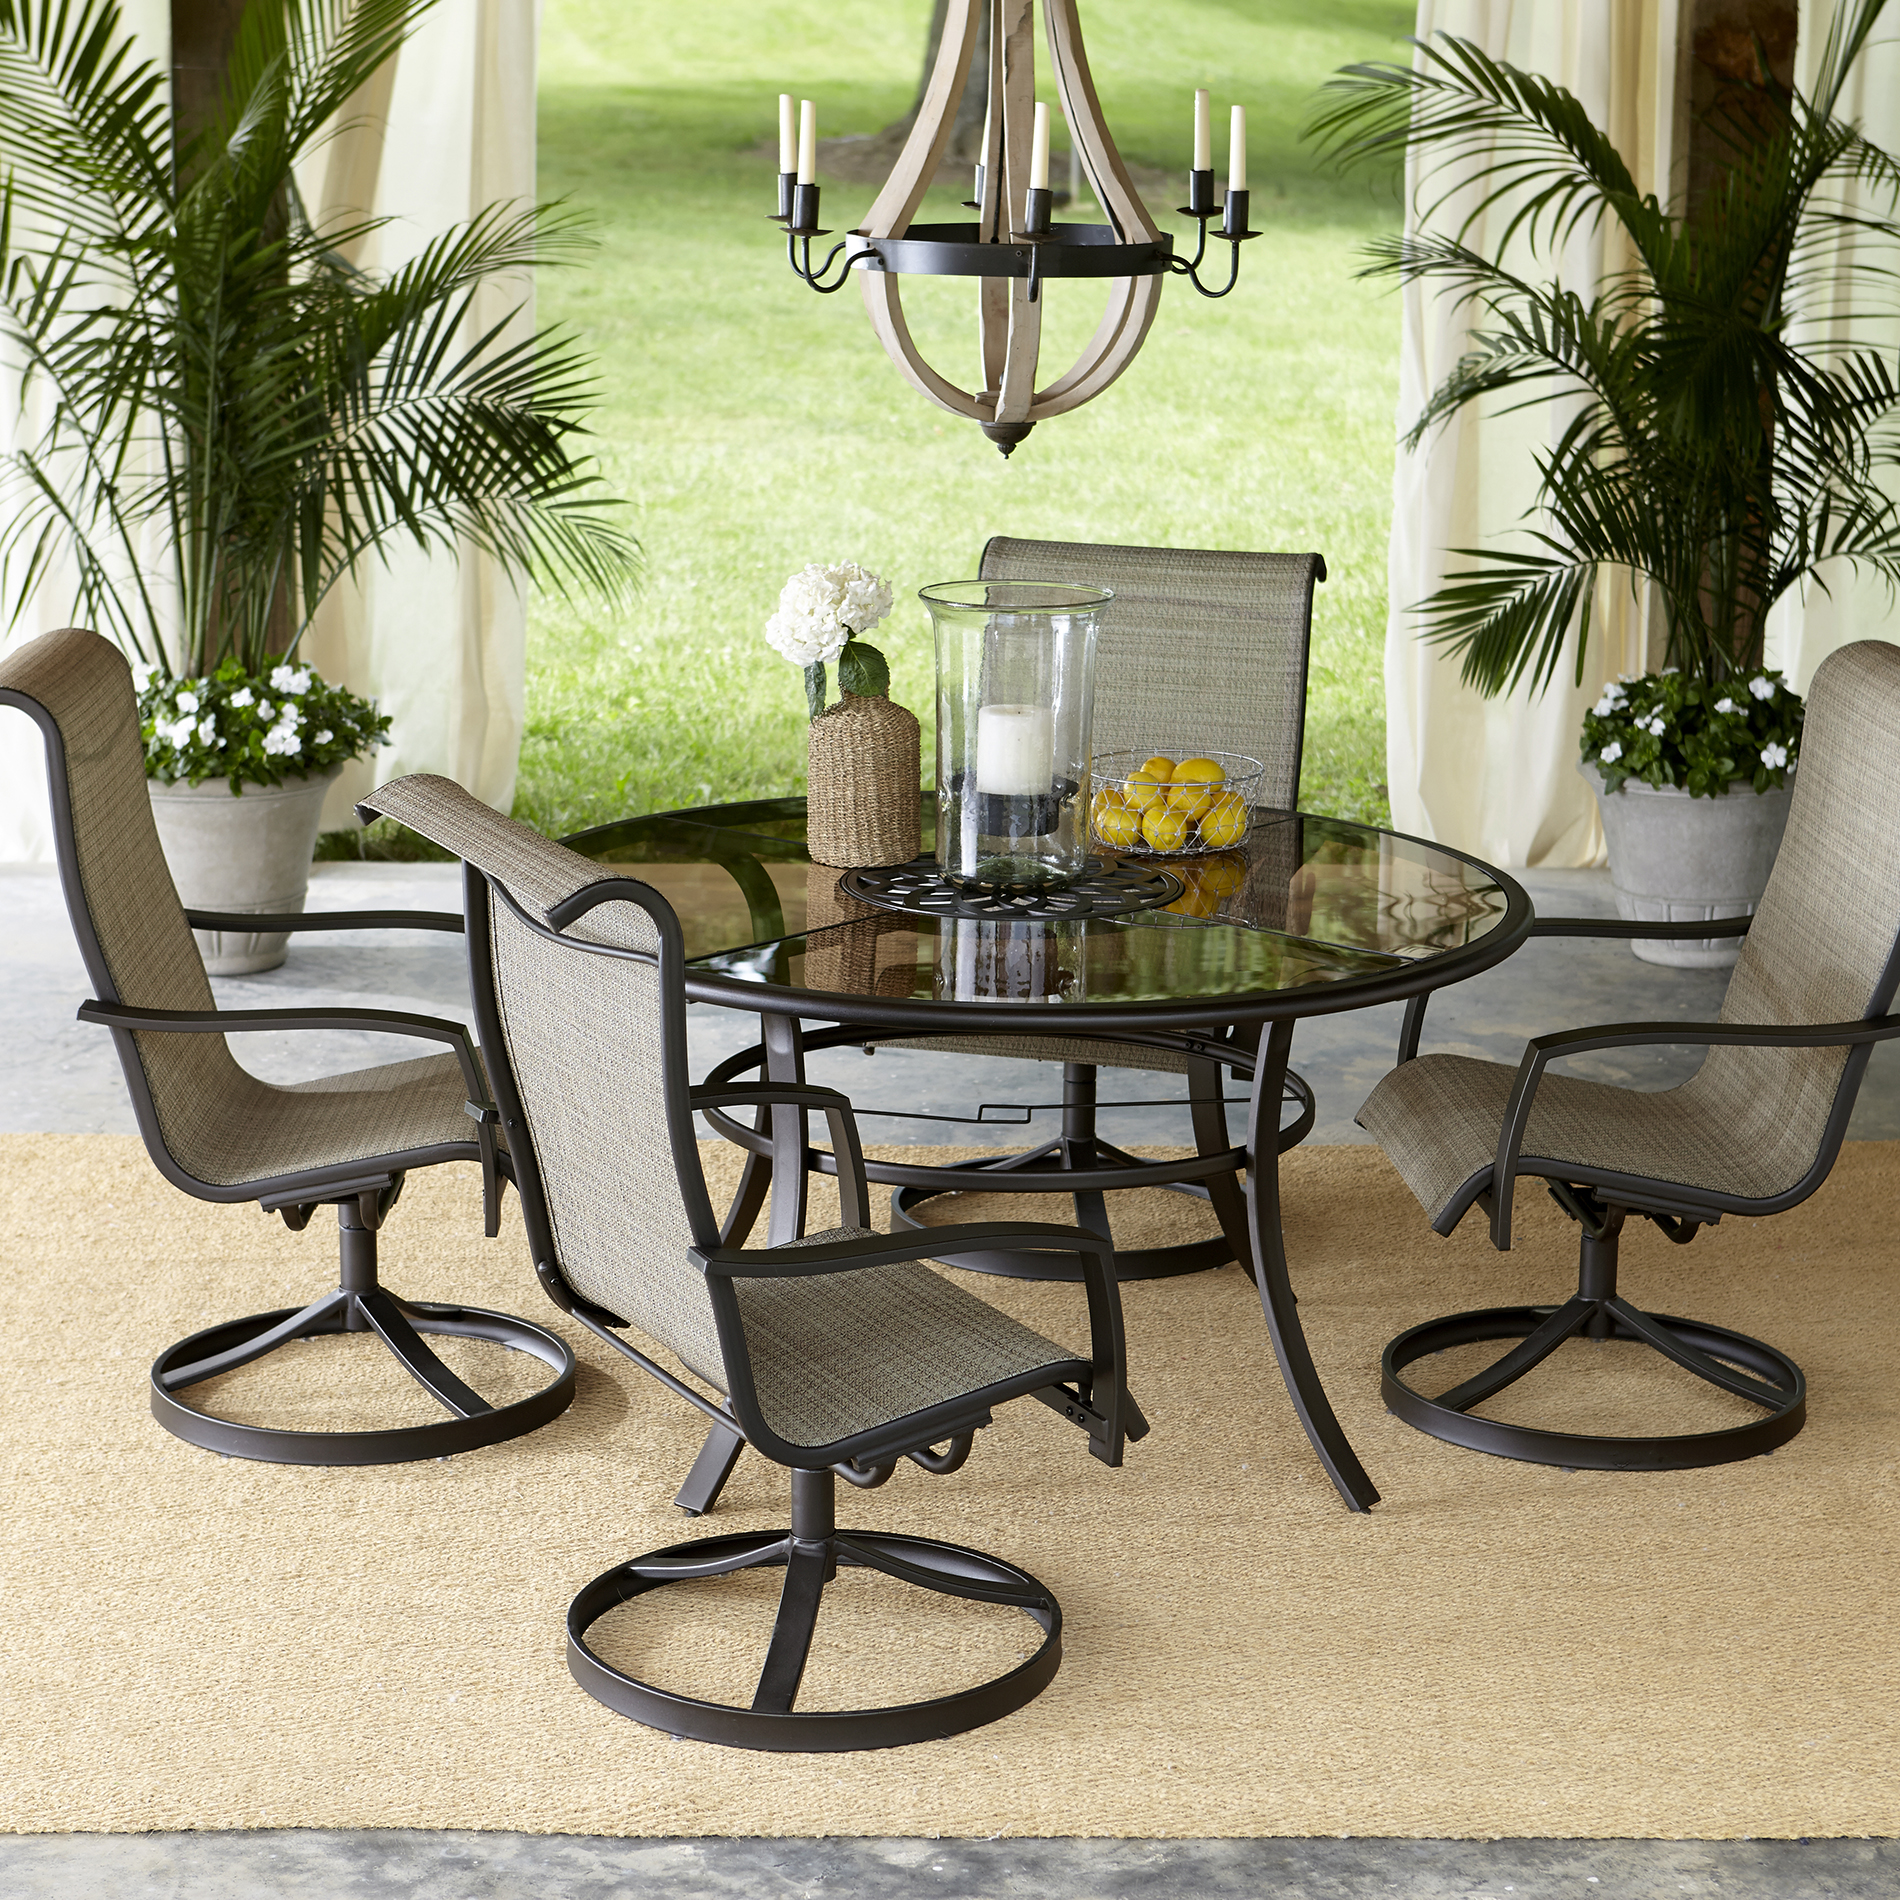 outdoor patio dining sets Garden Oasis Providence 5 Piece Swivel Dining Set